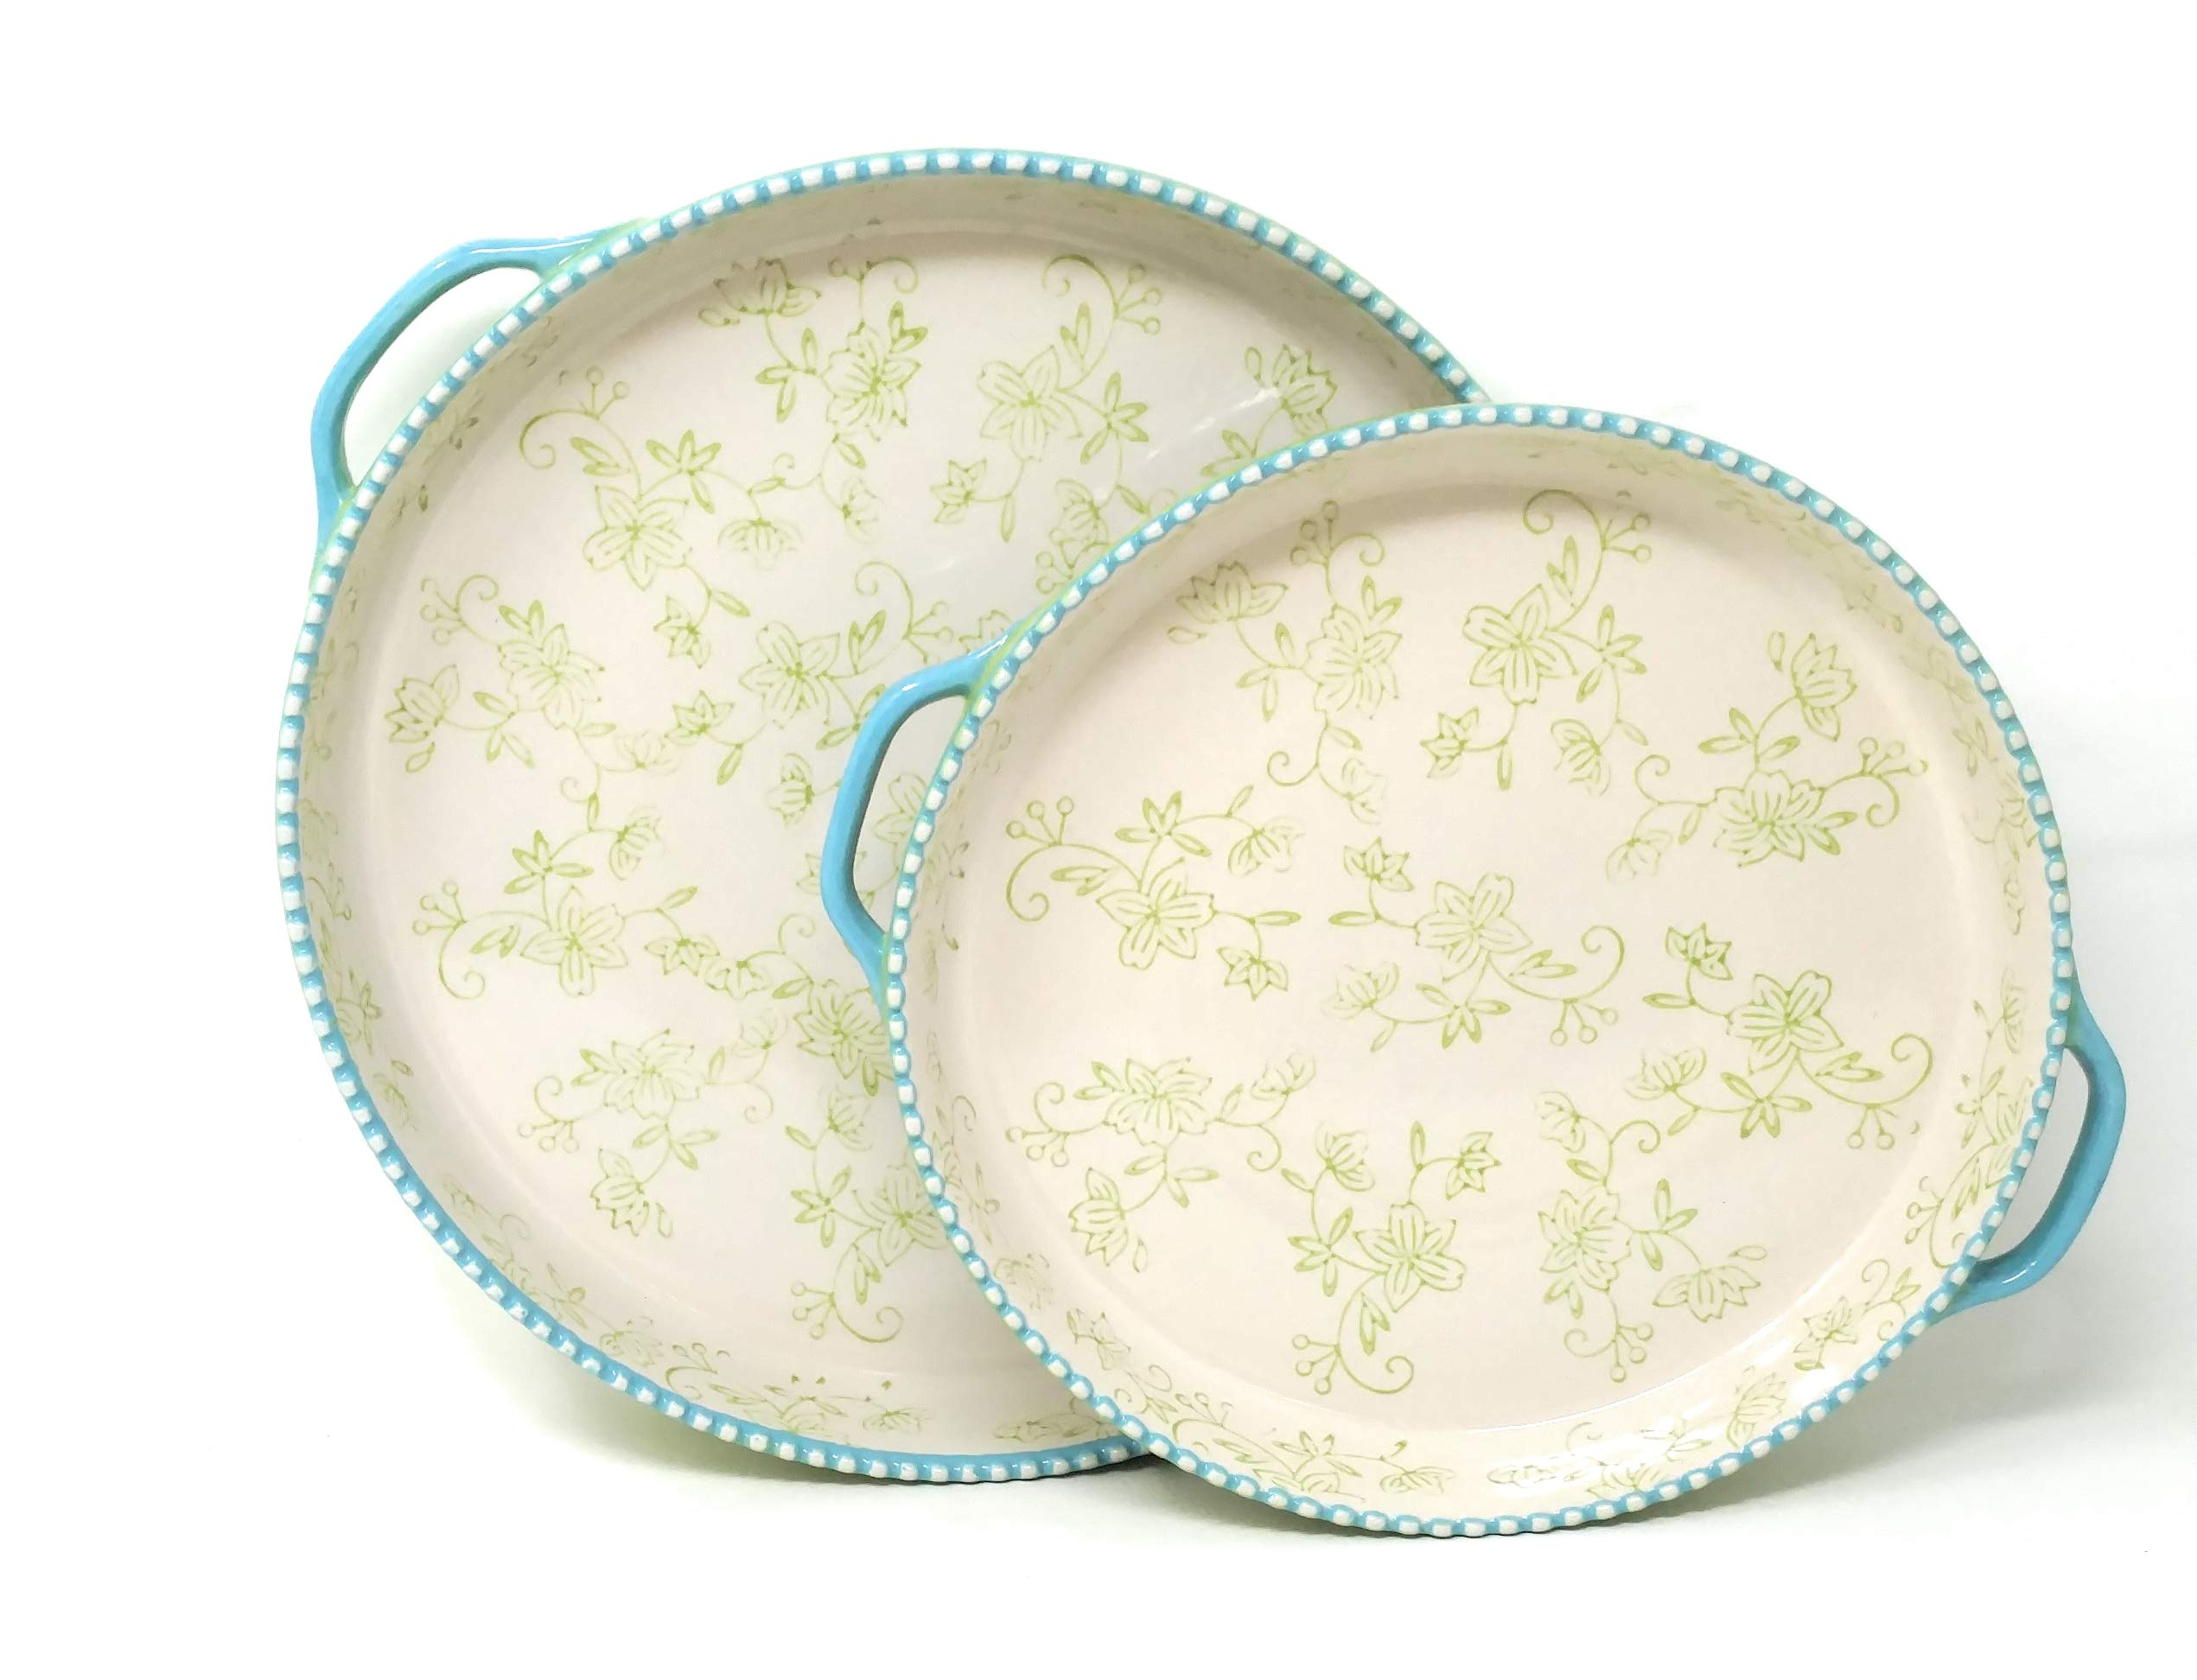 Temp-tations 11'' & 9'' Shallow Baker Pie Pan/Deep Dish Pizza, Set of 2 (Floral Lace Lime)